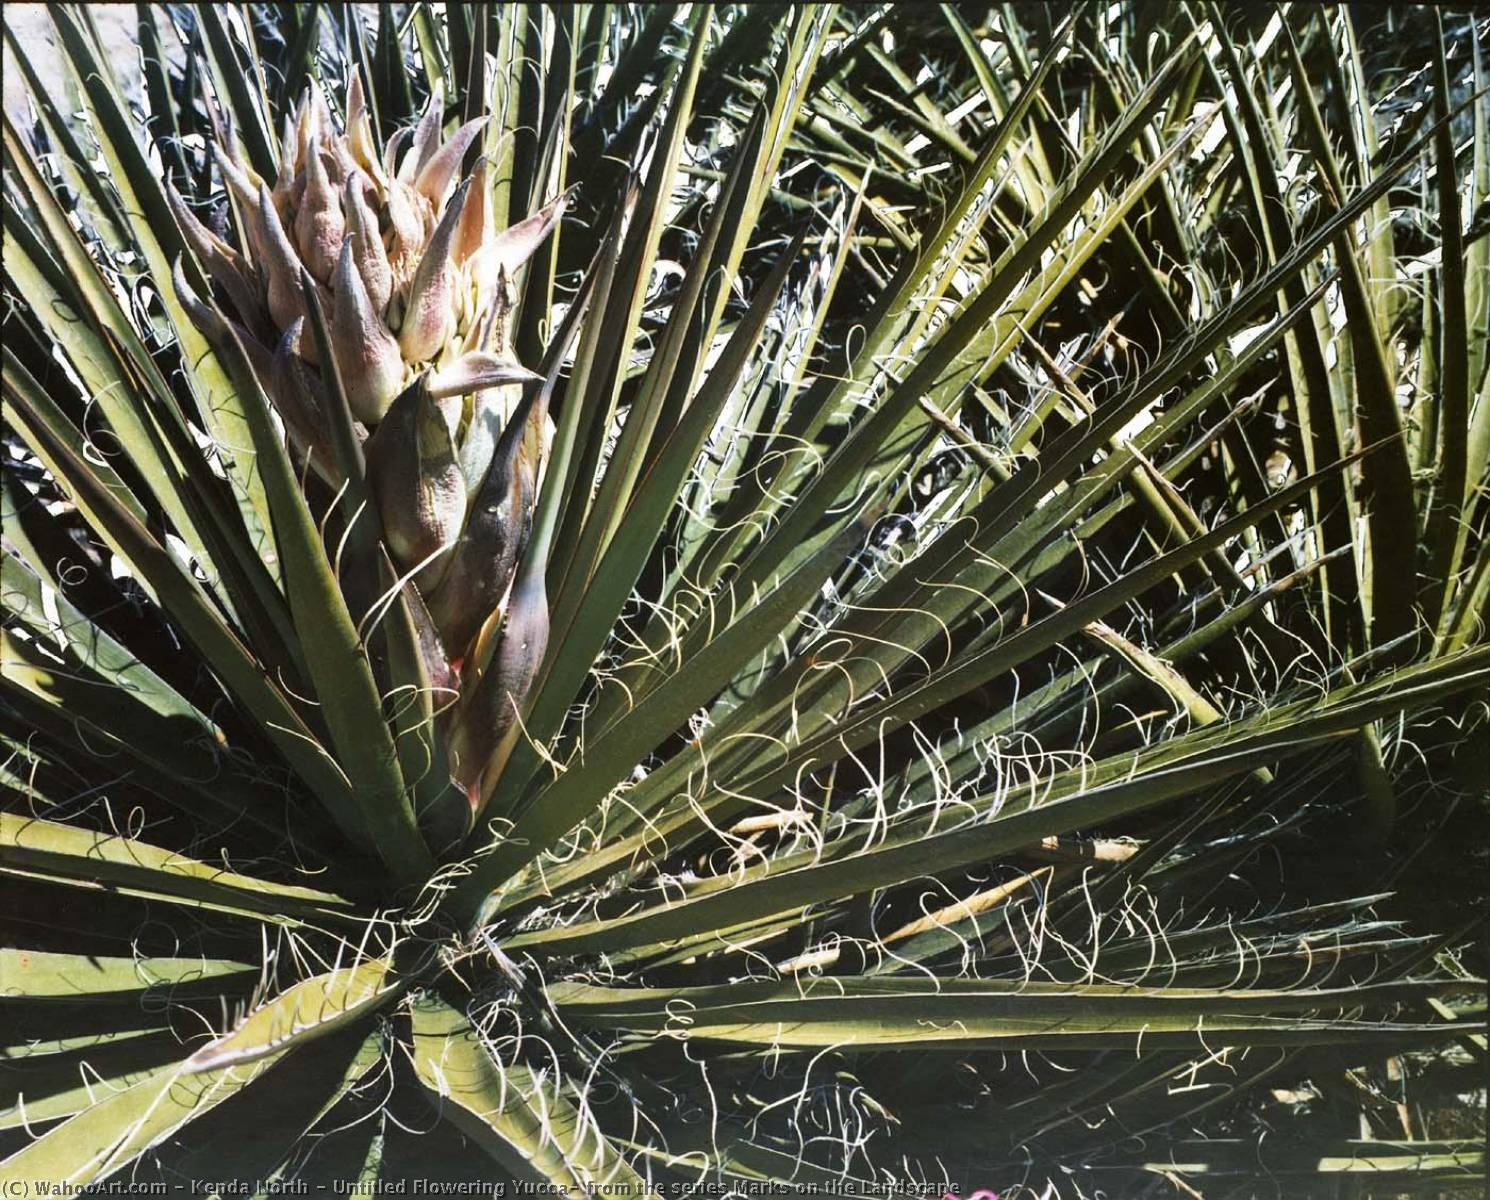 Wikioo.org - The Encyclopedia of Fine Arts - Painting, Artwork by Kenda North - Untitled Flowering Yucca, from the series Marks on the Landscape